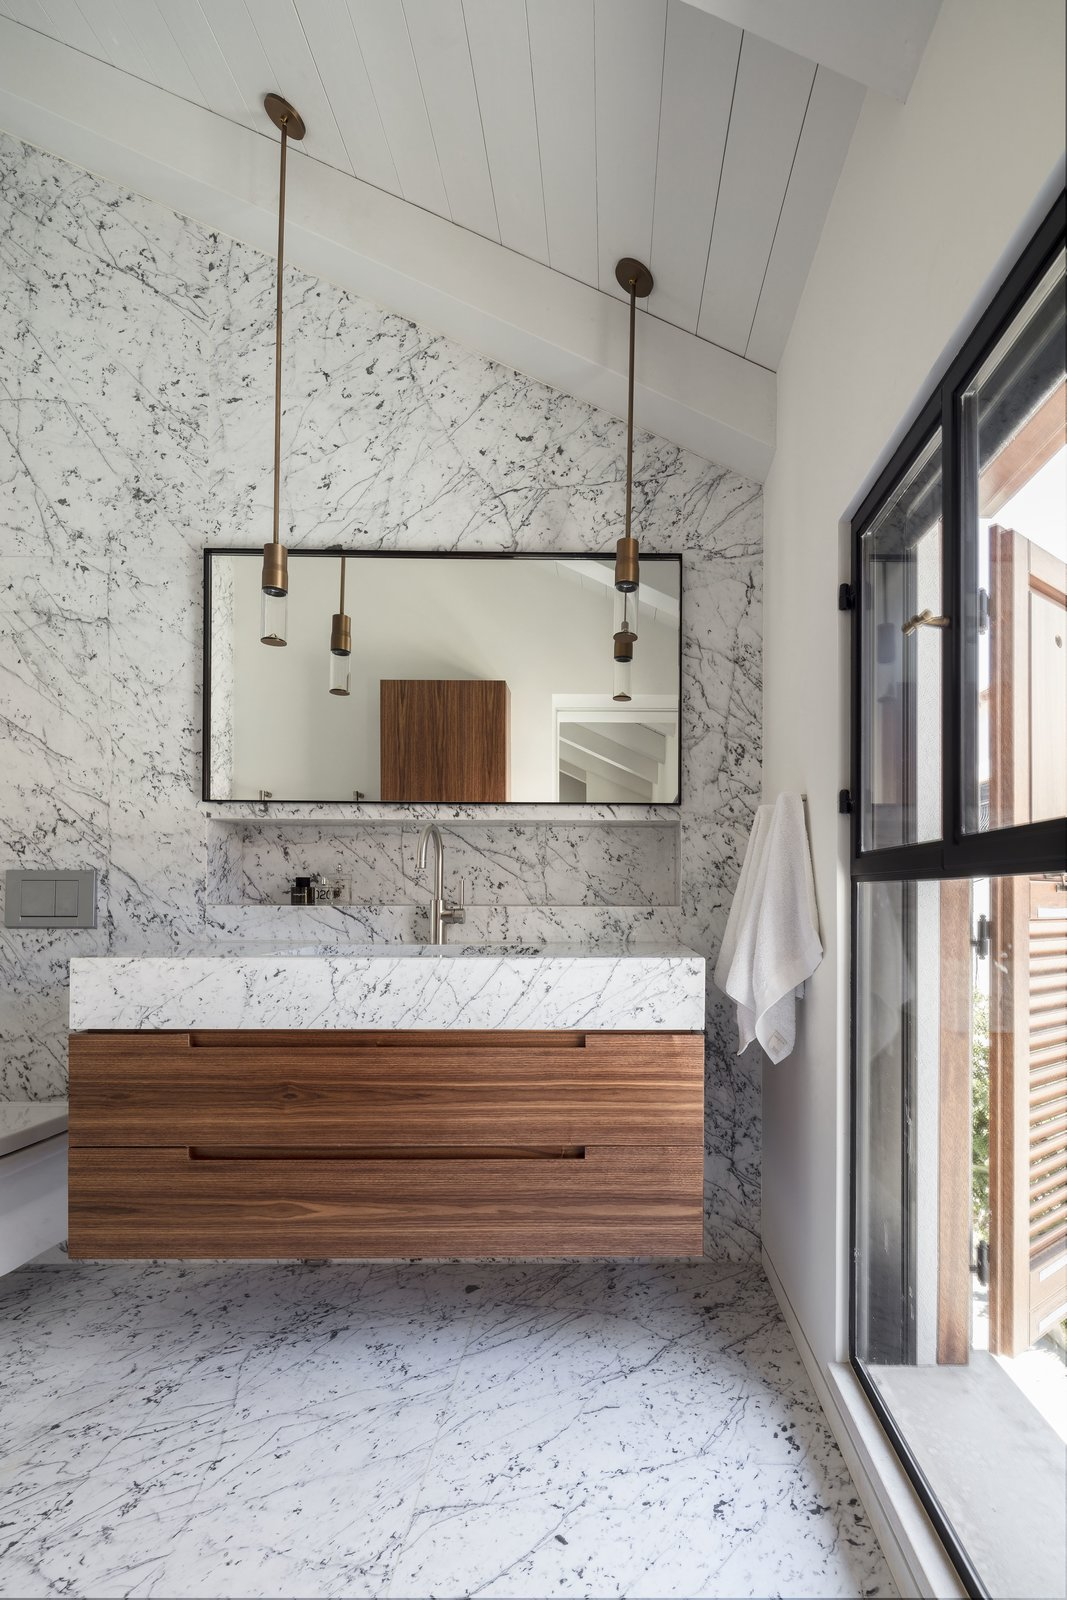 Marble, Undermount, Marble, Full, Pendant, Marble, One Piece, Storage, and Cabinet The Charm Townhouse - Master bathroom - cut to size 'Carrara Bianco' tiles intensifying the high ceiling  Best Storage Marble Undermount Photos from The Charm Townhouse